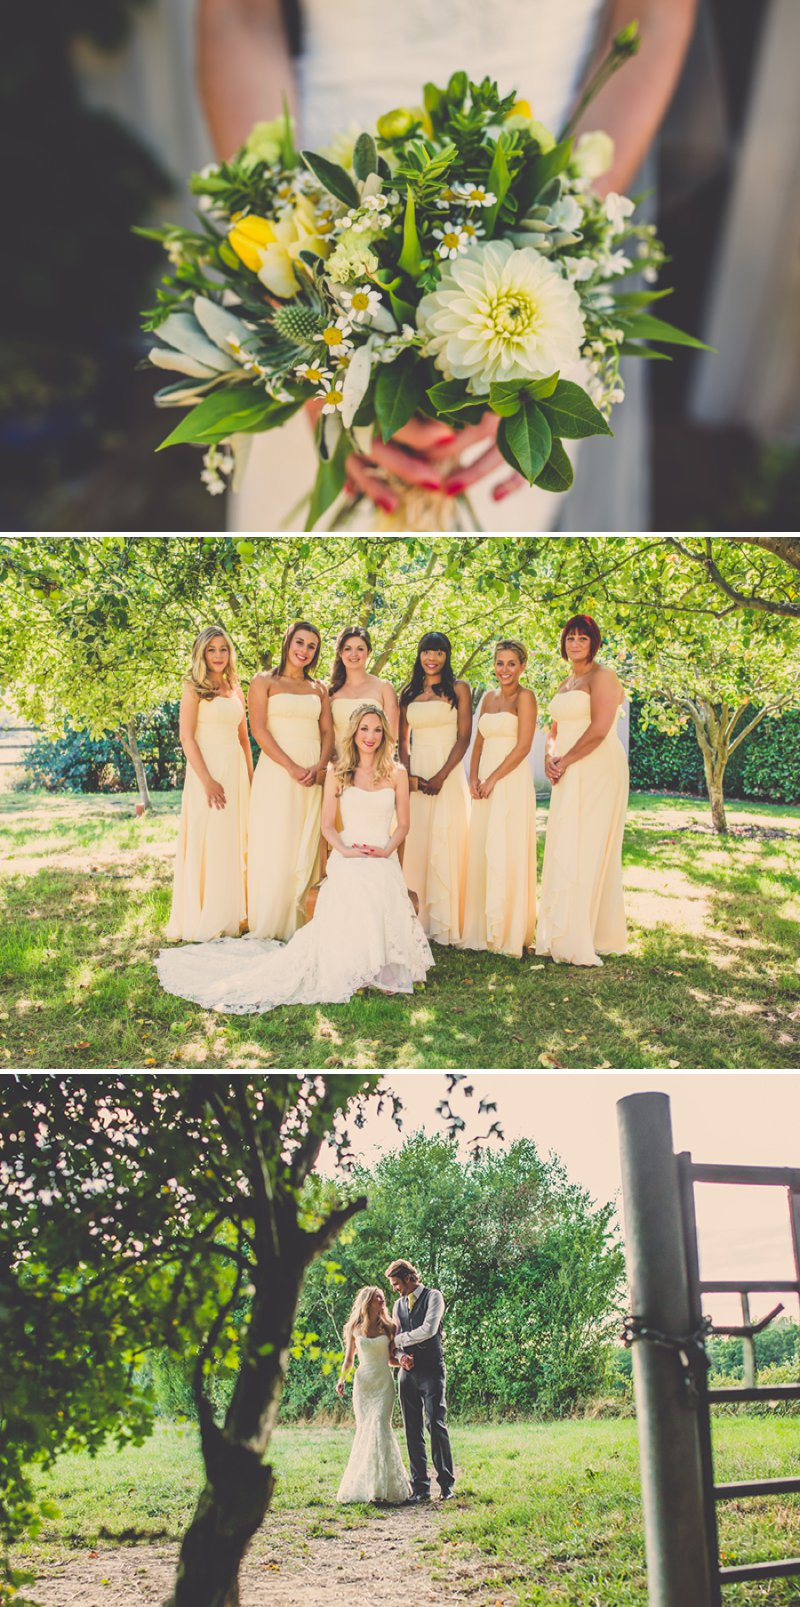 Pretty Back Garden Wedding In Hampshire With Bride In Blue By Enzoani Gown And Nude Carvela Shoes With Wild Daisies And Bridesmaids In Pale Yellow Gowns And Groom In Grey 1 Yellow Daisies For A Pretty Summer Wedding.